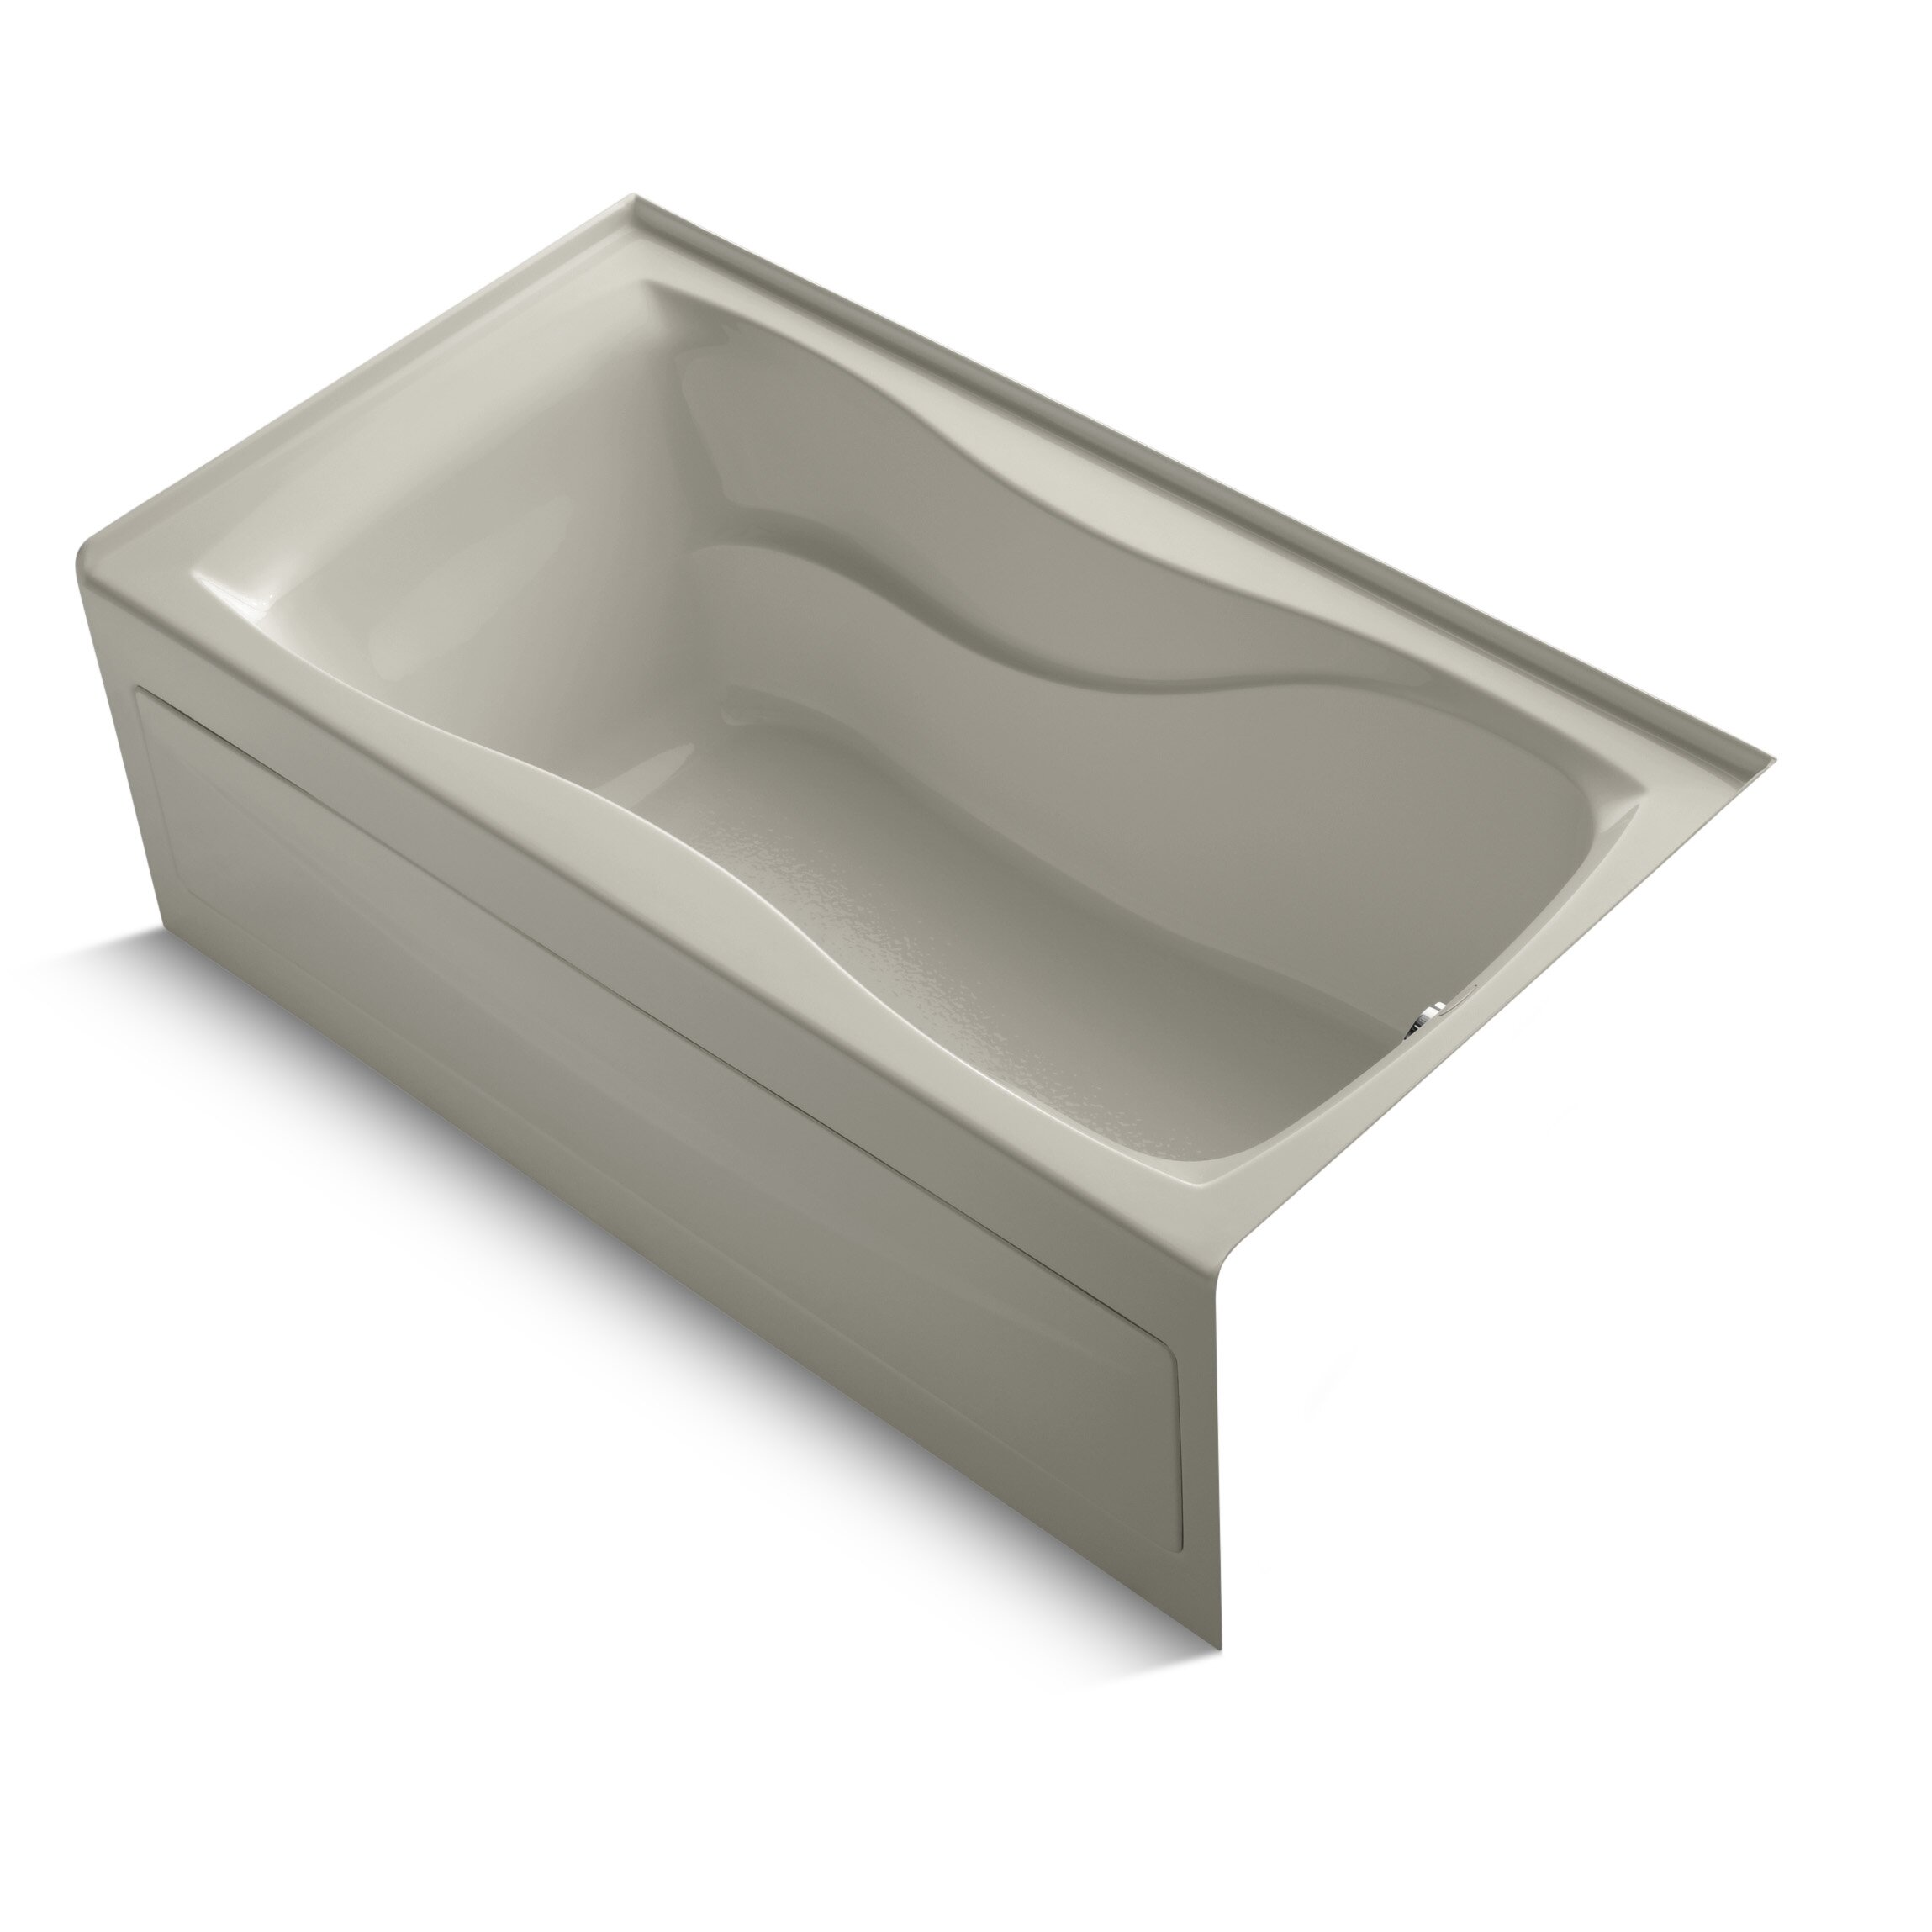 fixtures all bathtubs kohler part k 1219 ra sku koh1342